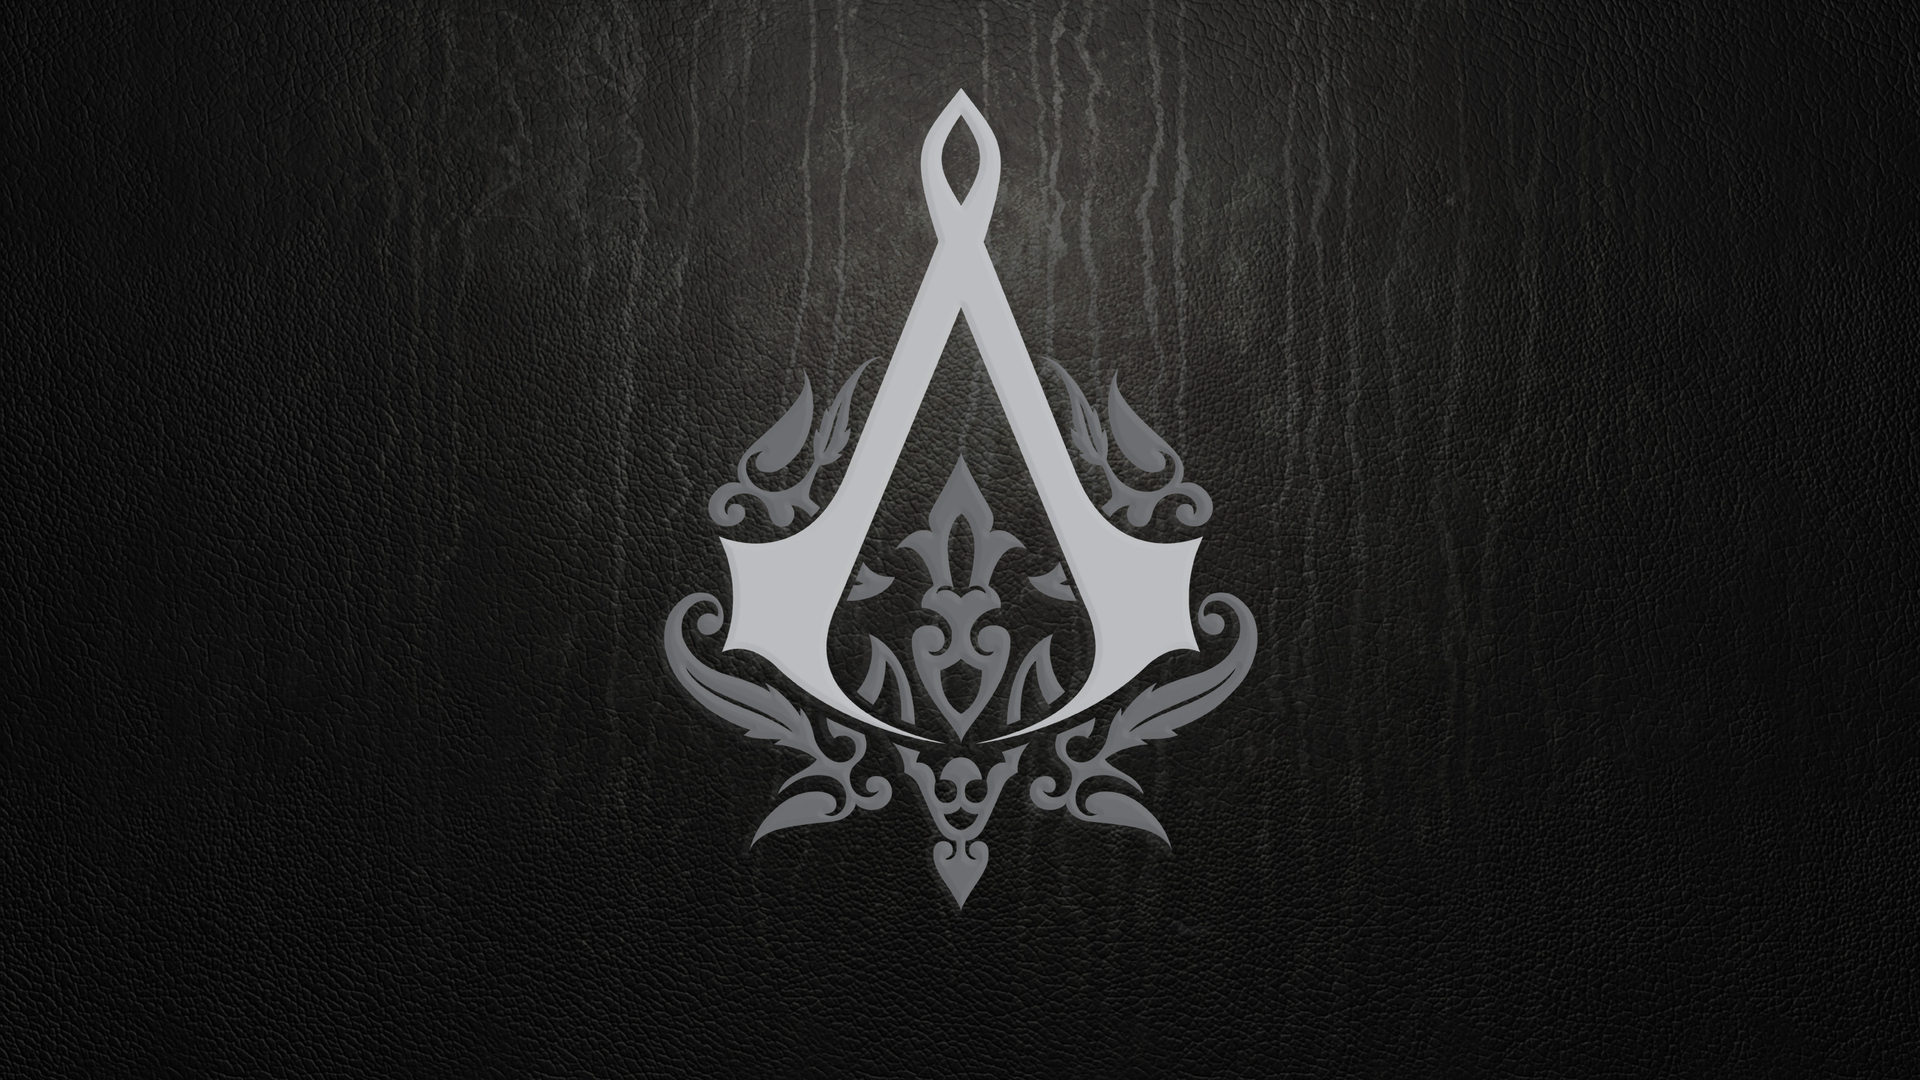 Gallery images and information Assassins Creed 4 Hd Wallpapers 1080p 1920x1080